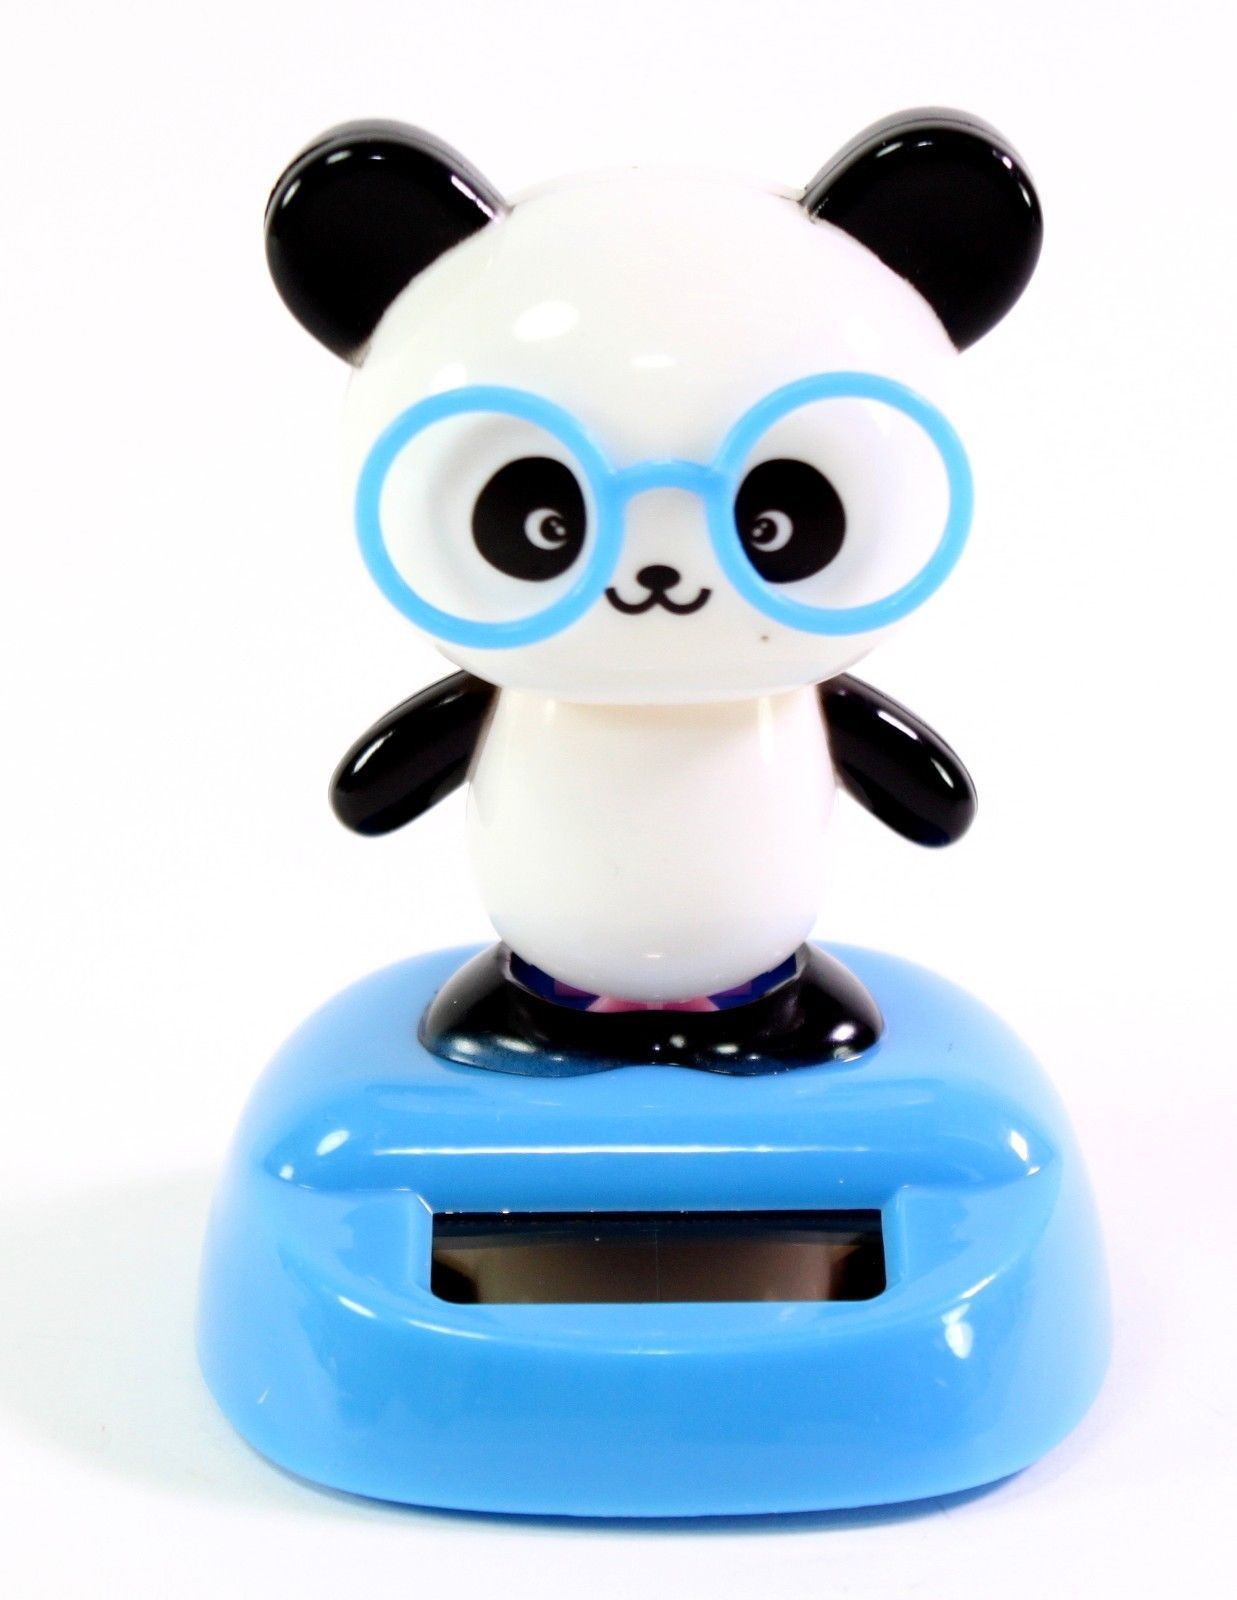 Birthday toys images  Dancing Panda with Glasses Beach Solar Toy Home Decor Birthday Gift